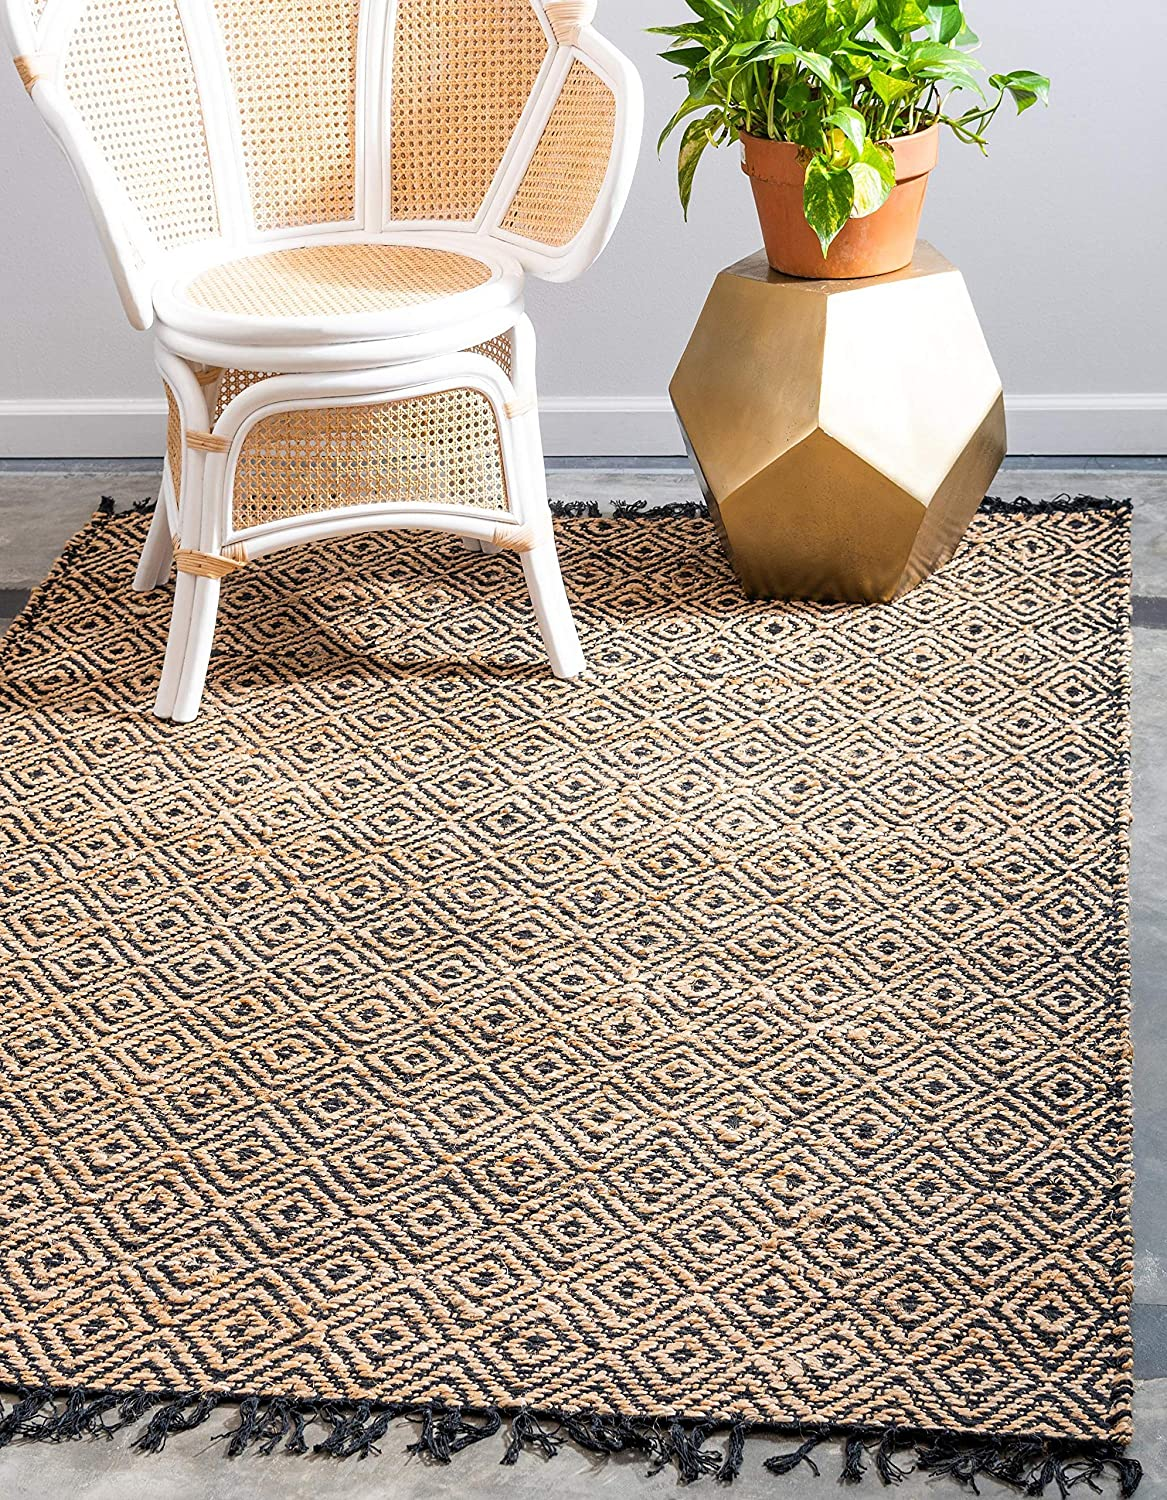 Unique Loom Braided Jute Collection Hand Woven Natural Fibers Natural Area Rug (3' x 5')